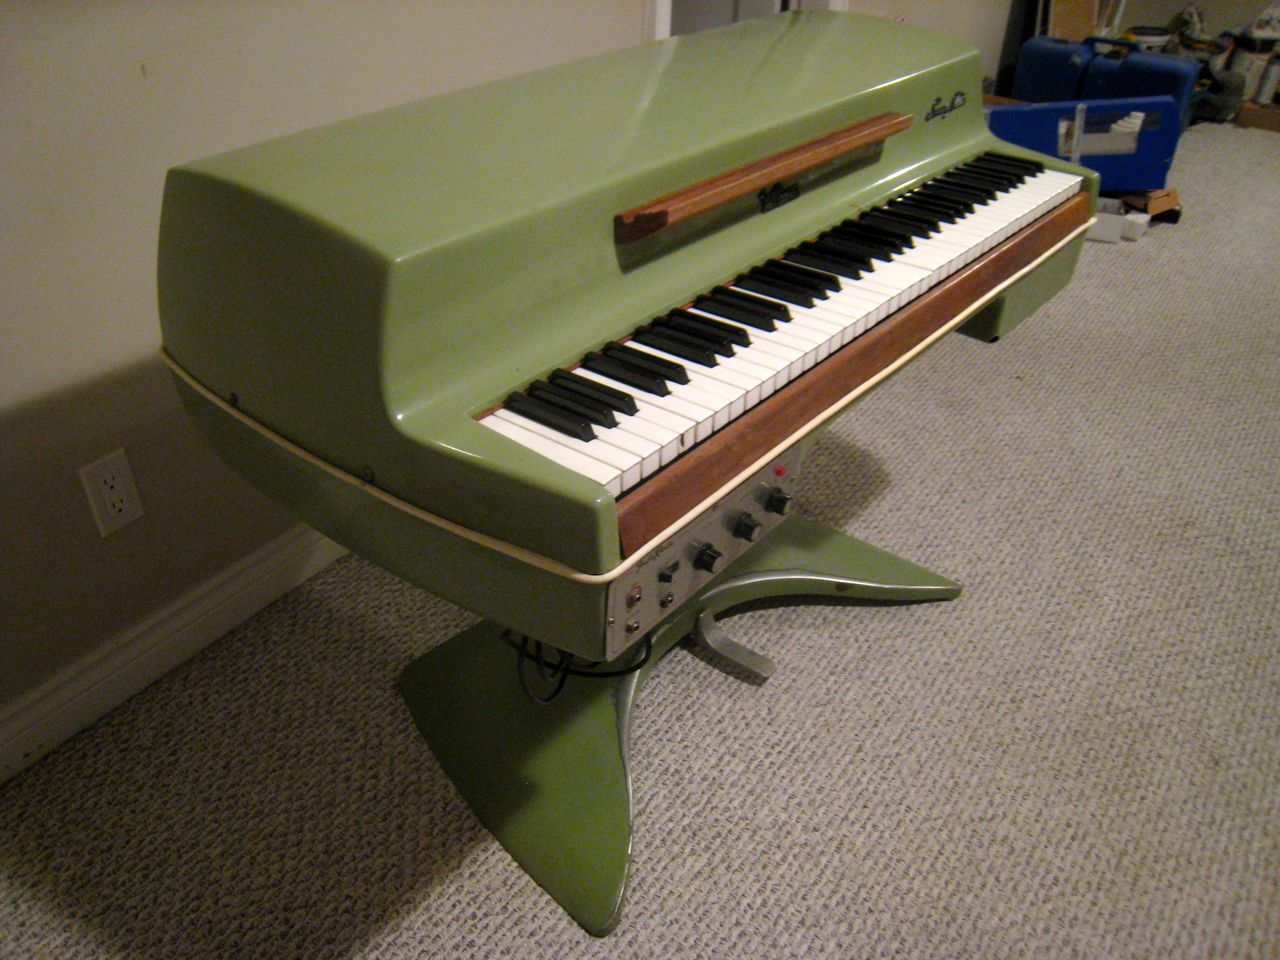 matrixsynth 1969 fender rhodes student piano jetsons model. Black Bedroom Furniture Sets. Home Design Ideas